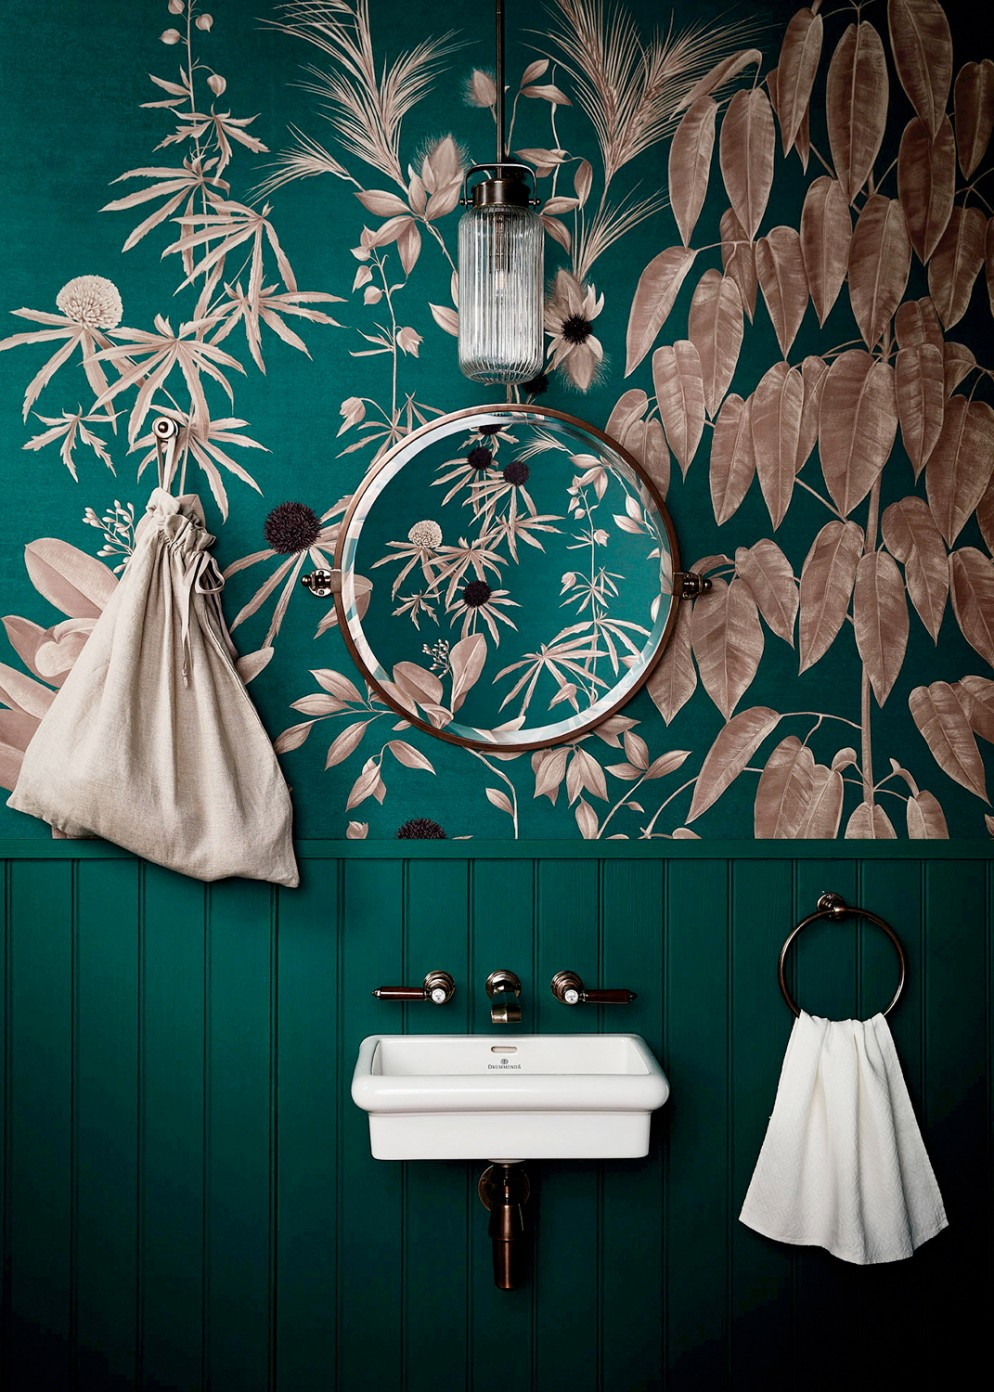 06-Anna_Glover_Garden_of_Serica_for_Drummonds_Bathrooms_Image_Damien_Russell_RGB - Copy